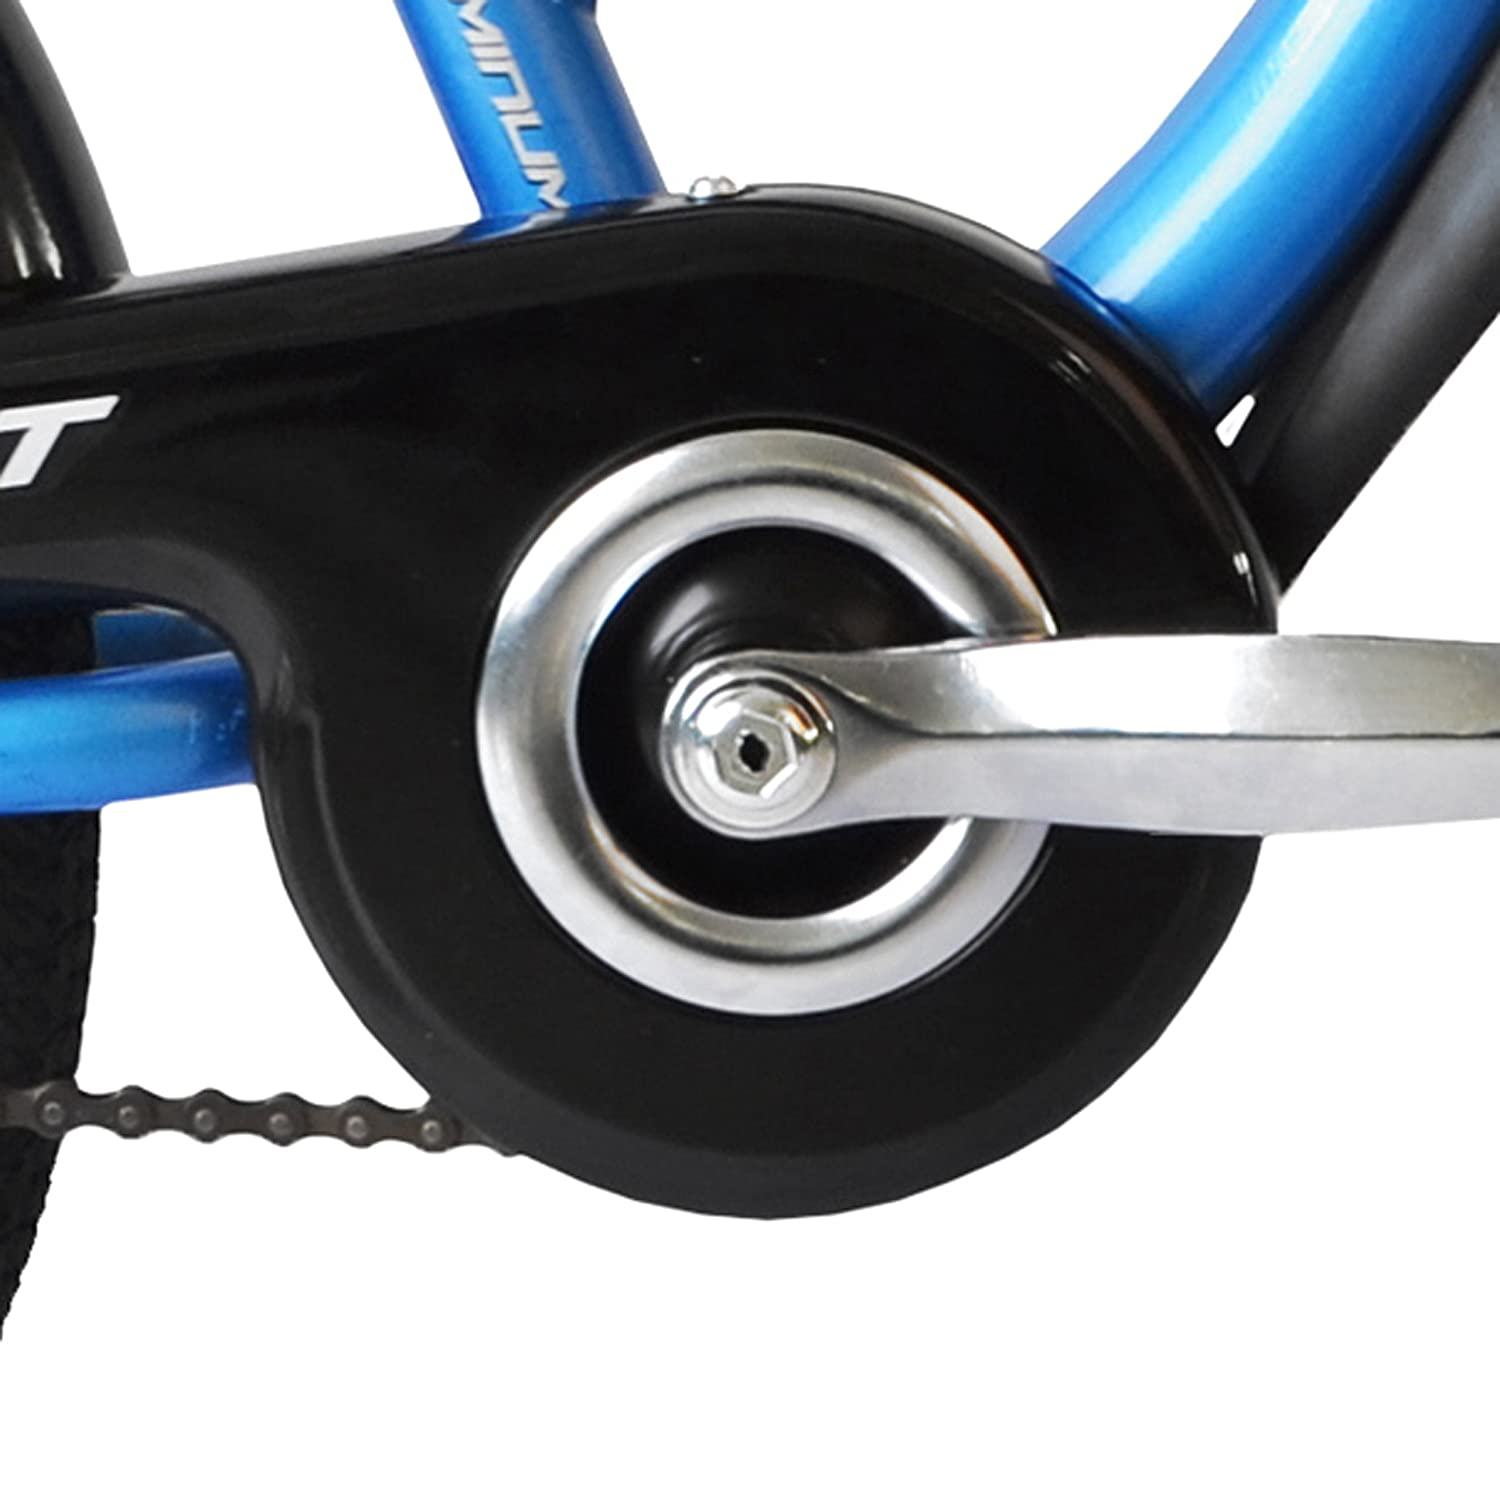 81fbbf6a033 WeeRide Pro Pilot Aluminium Tagalong Trailer Bike - Blue: Amazon.co.uk:  Sports & Outdoors